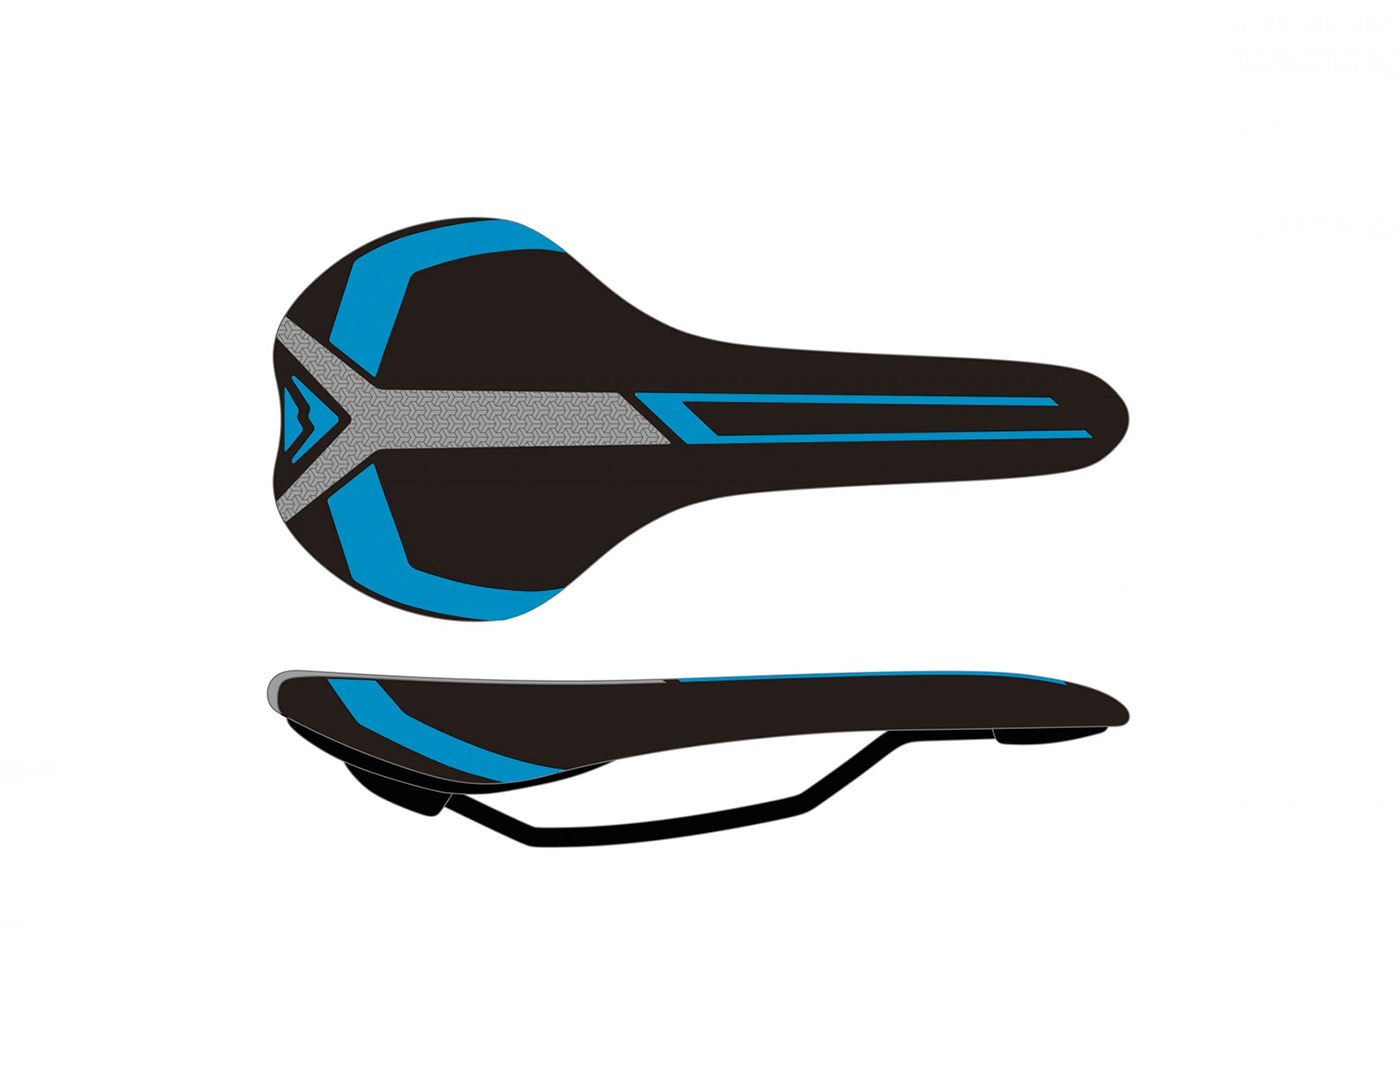 Седло Merida Race black/blue (2070074039)